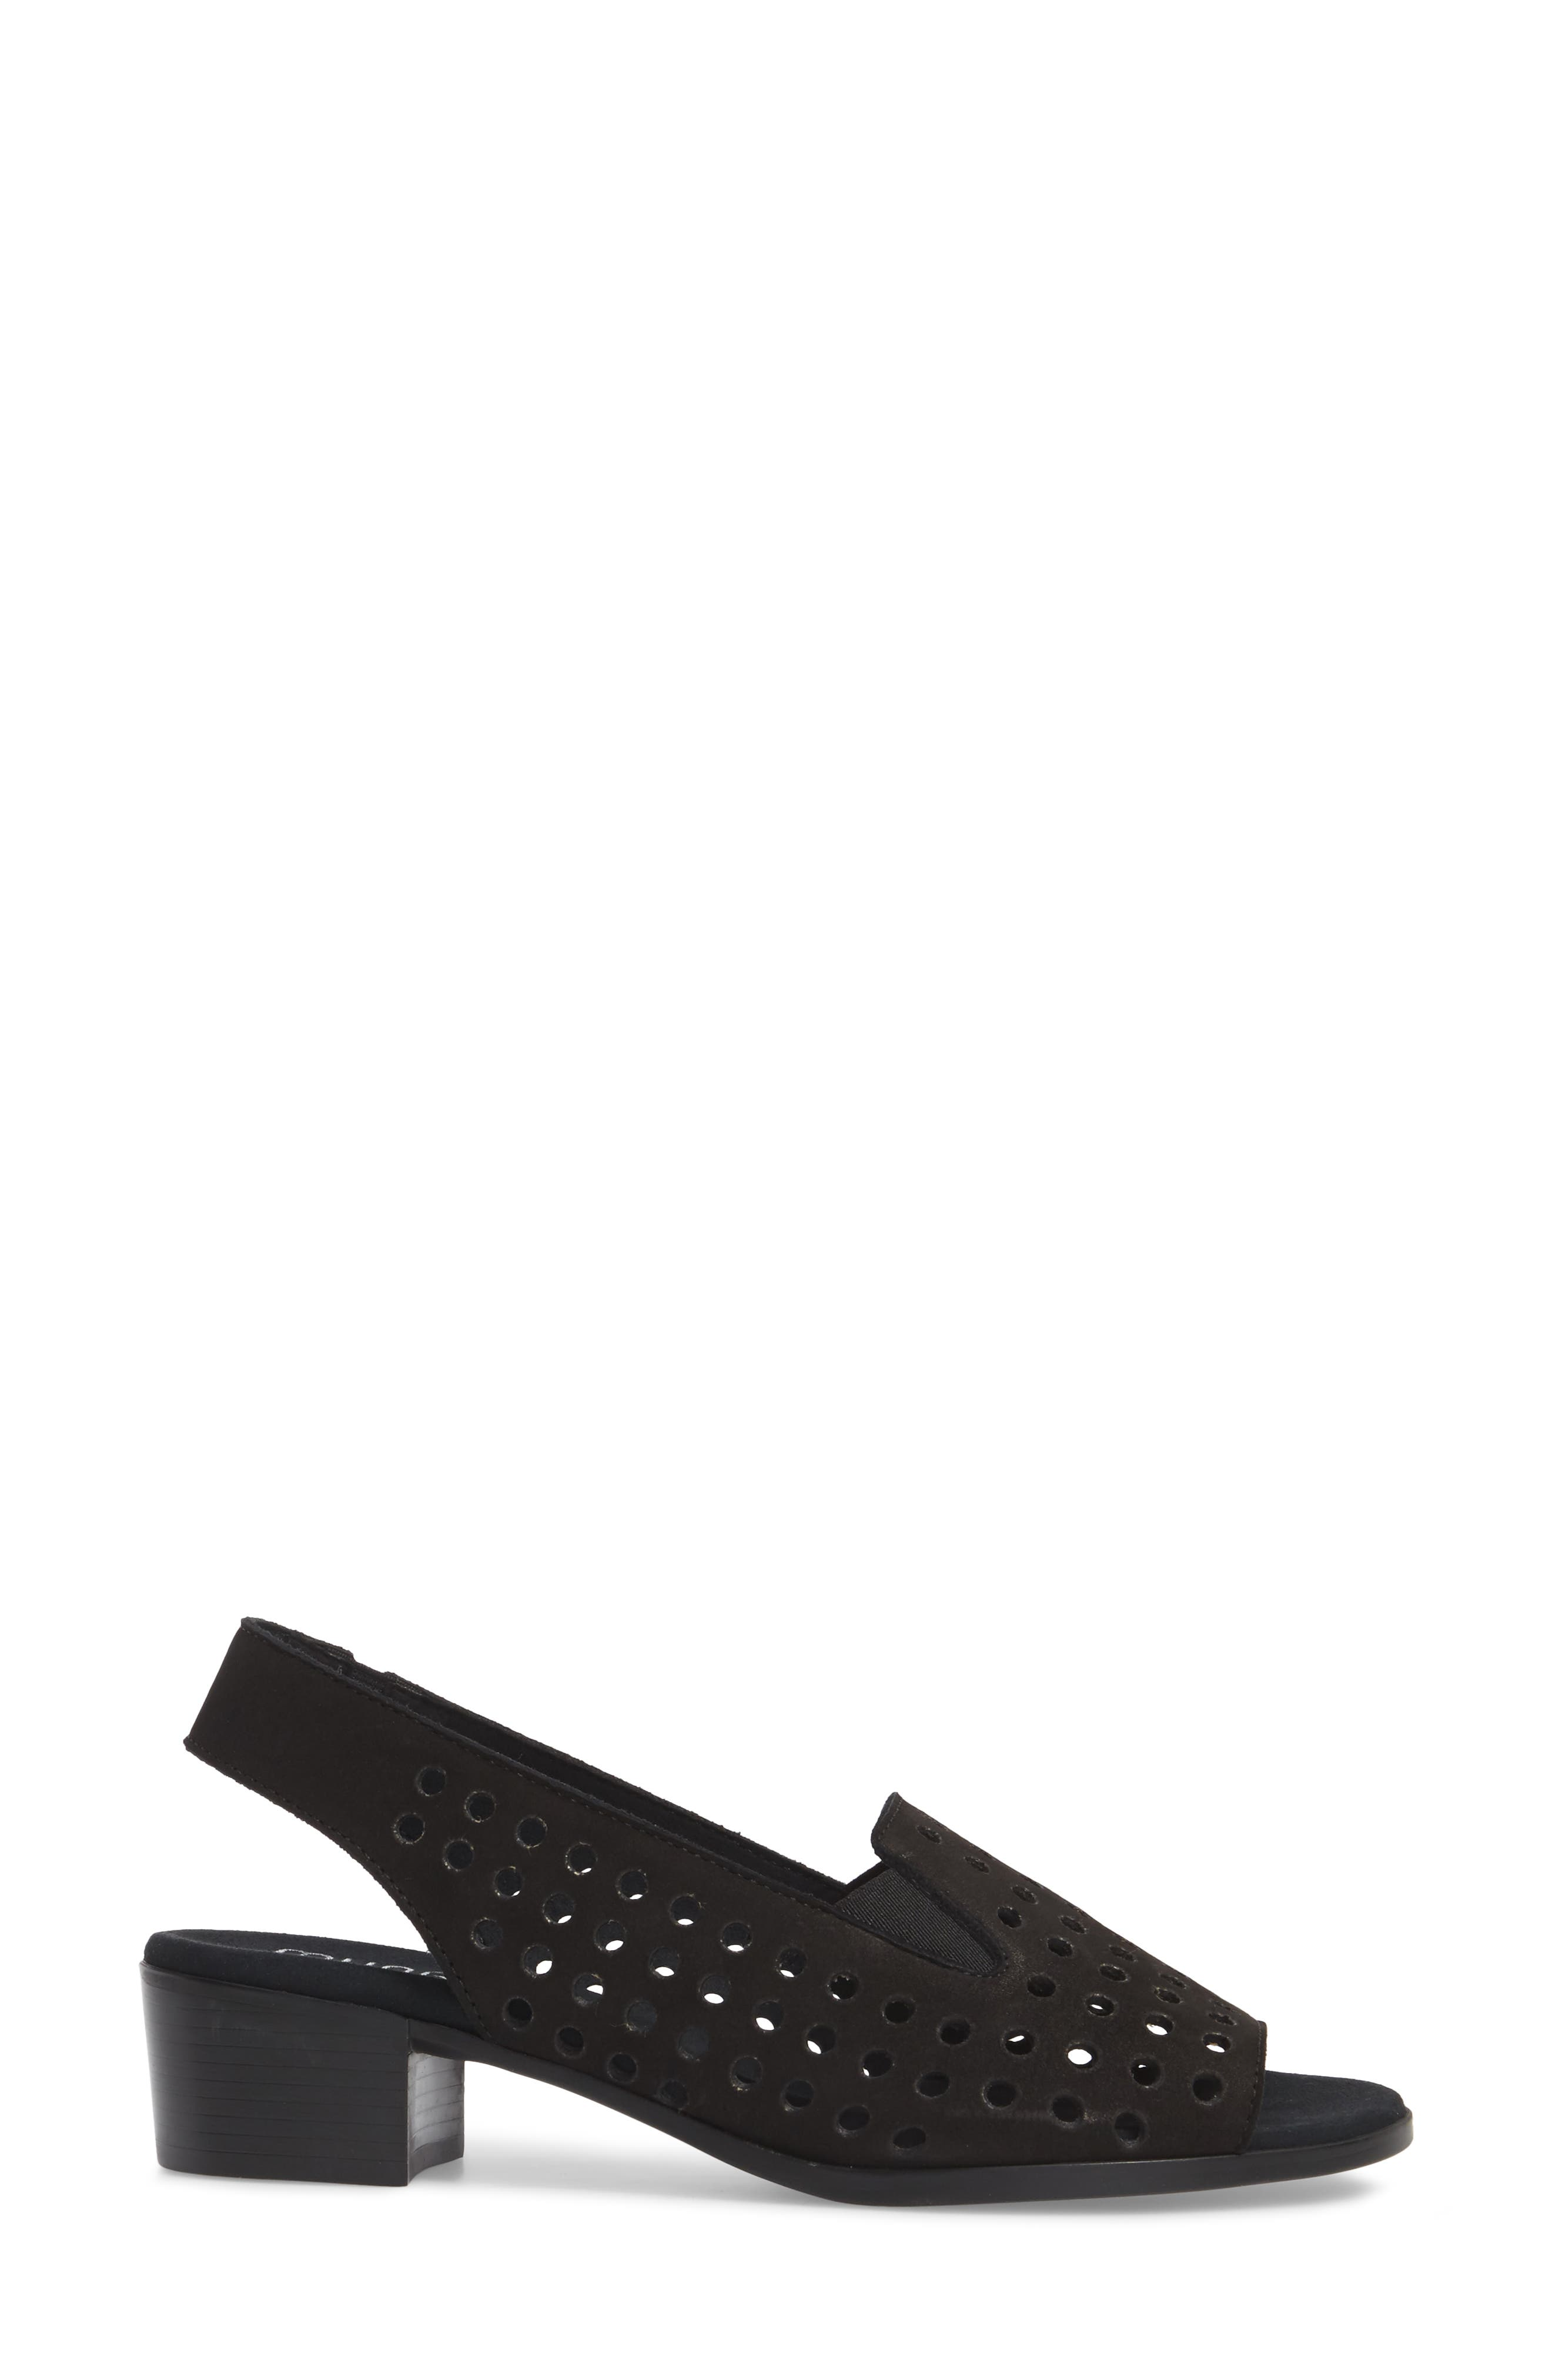 Mickee Slingback Sandal,                             Alternate thumbnail 3, color,                             BLACK NUBUCK LEATHER